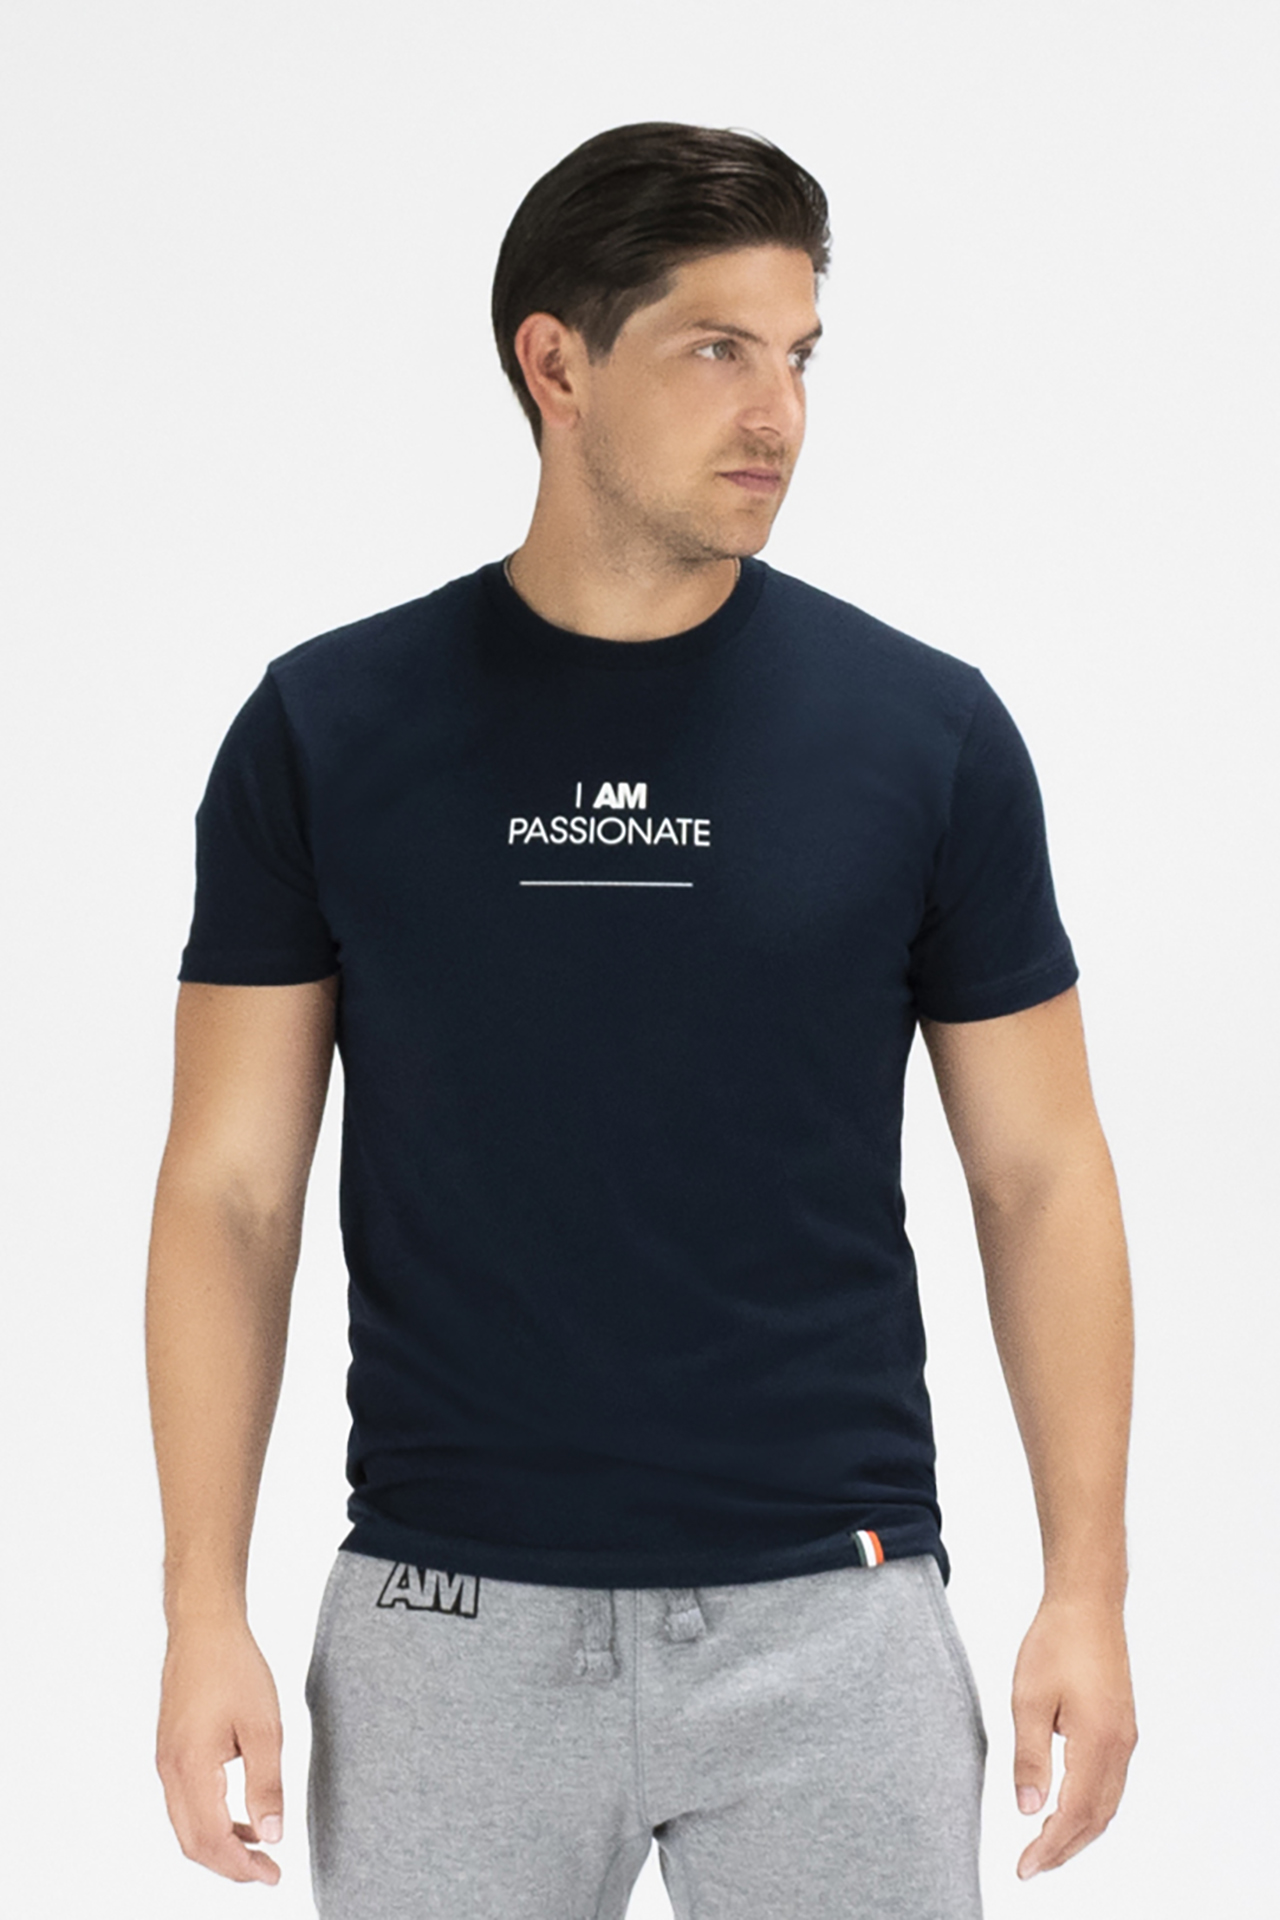 I AM PASSIONATE T-shirt in Navy